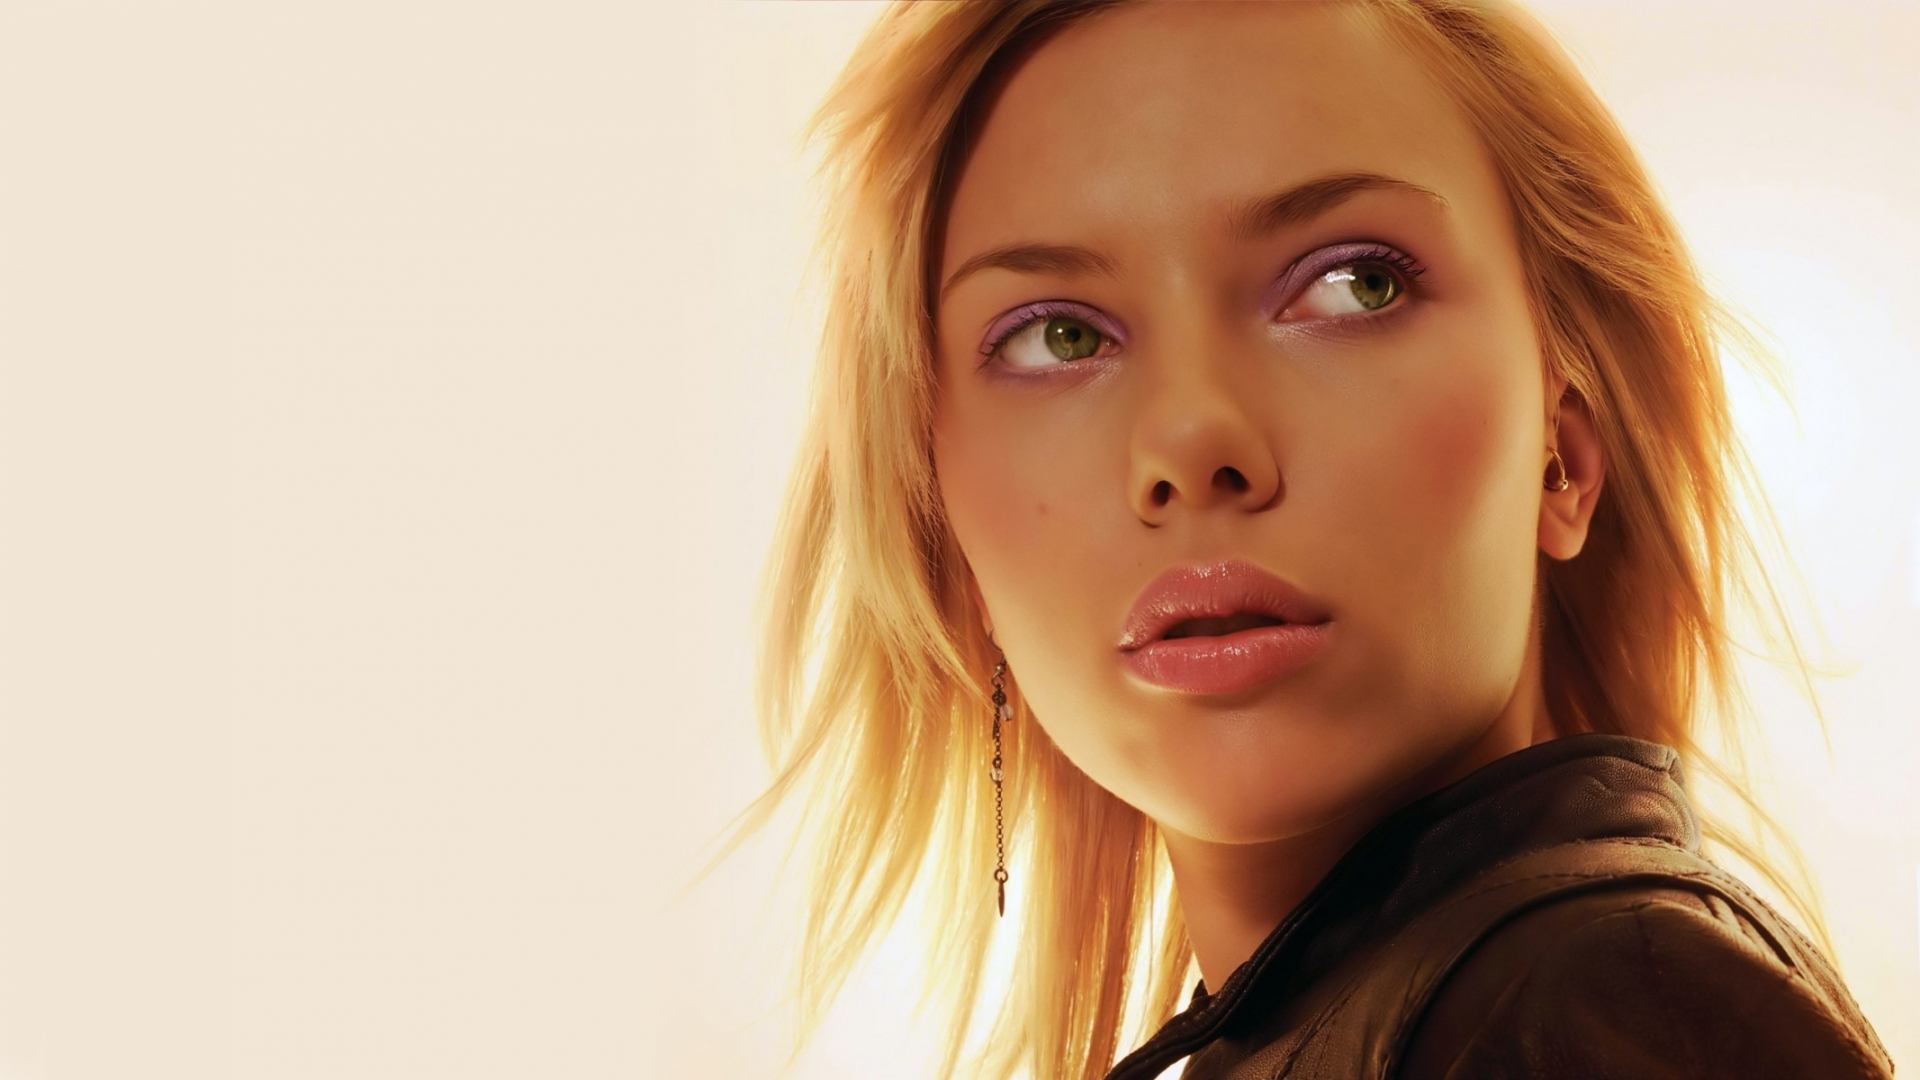 47075 download wallpaper Cinema, People, Girls, Scarlett Johansson screensavers and pictures for free